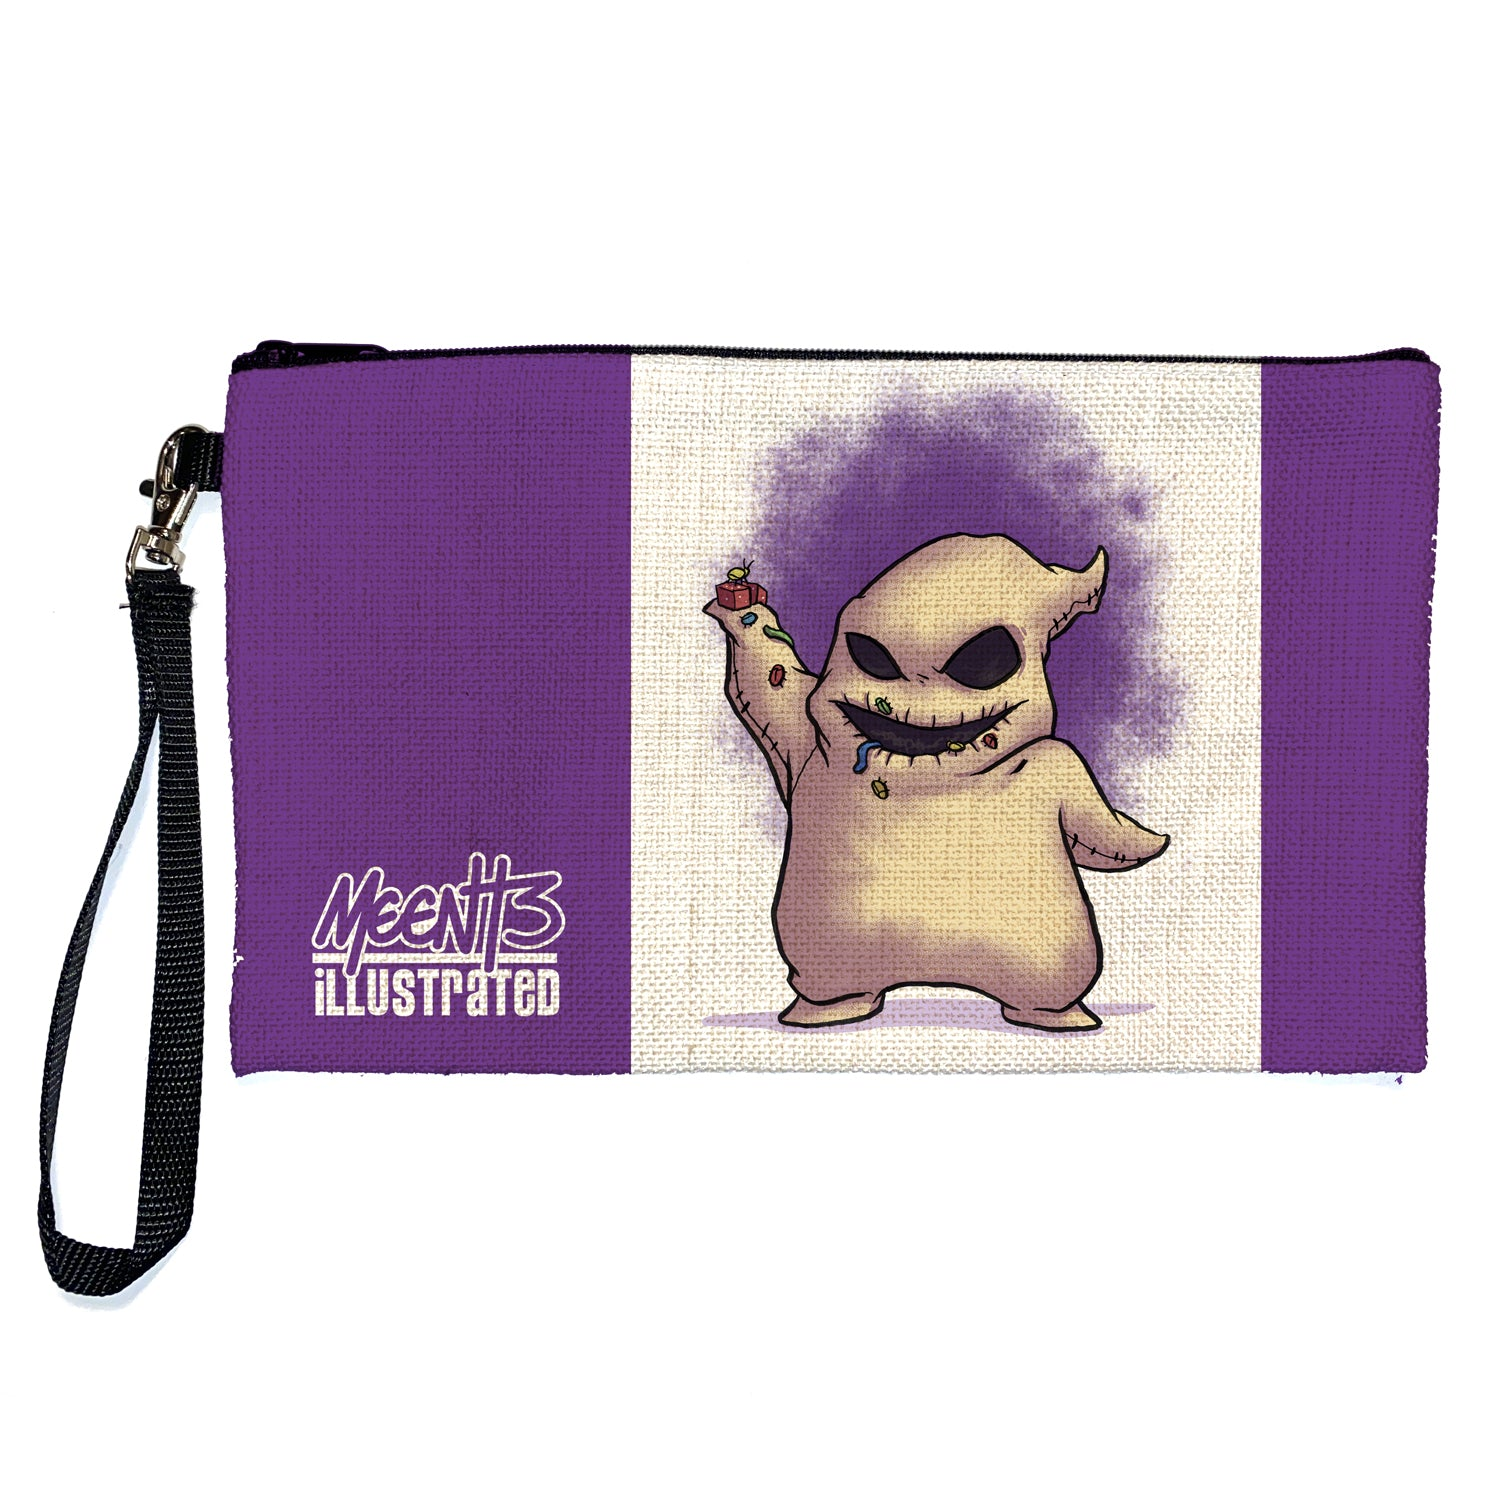 Oogie Boogie - Character - Large Pencil/Device Bag